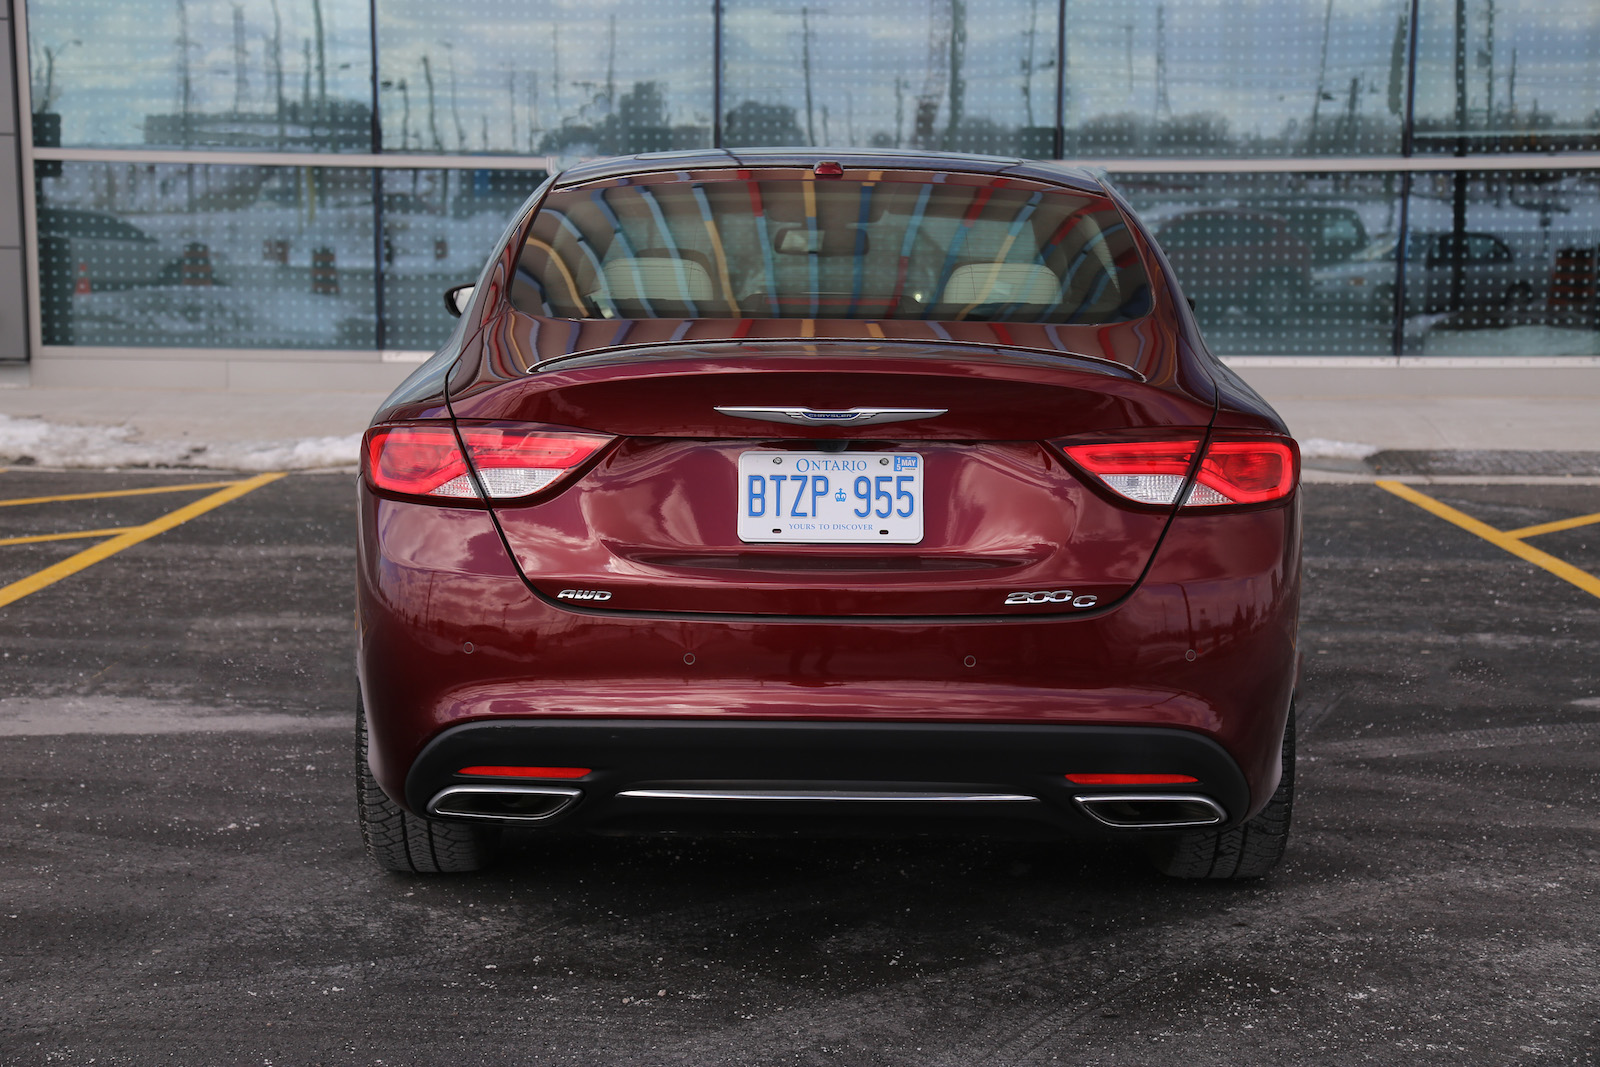 Chrysler 200: To Disarm The System